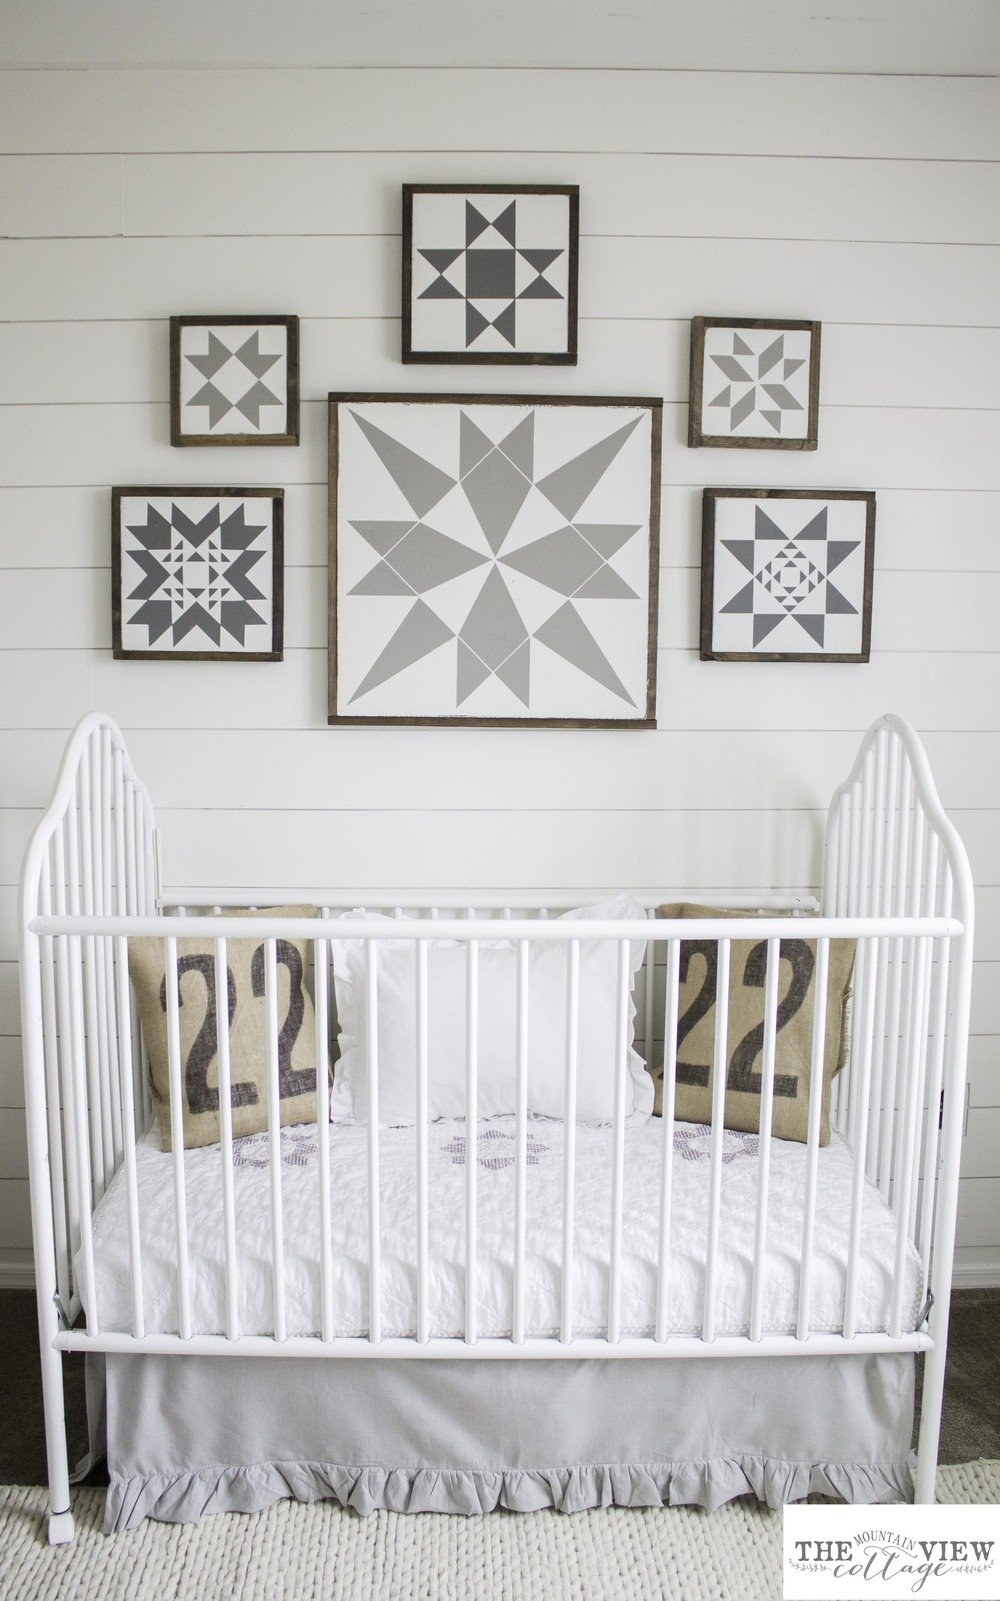 The Starting Point For This Nursery Was Walls I Knew From Day One Wanted To Do Some Joanna Gaines Inspired Ship Lap And Paint Everything